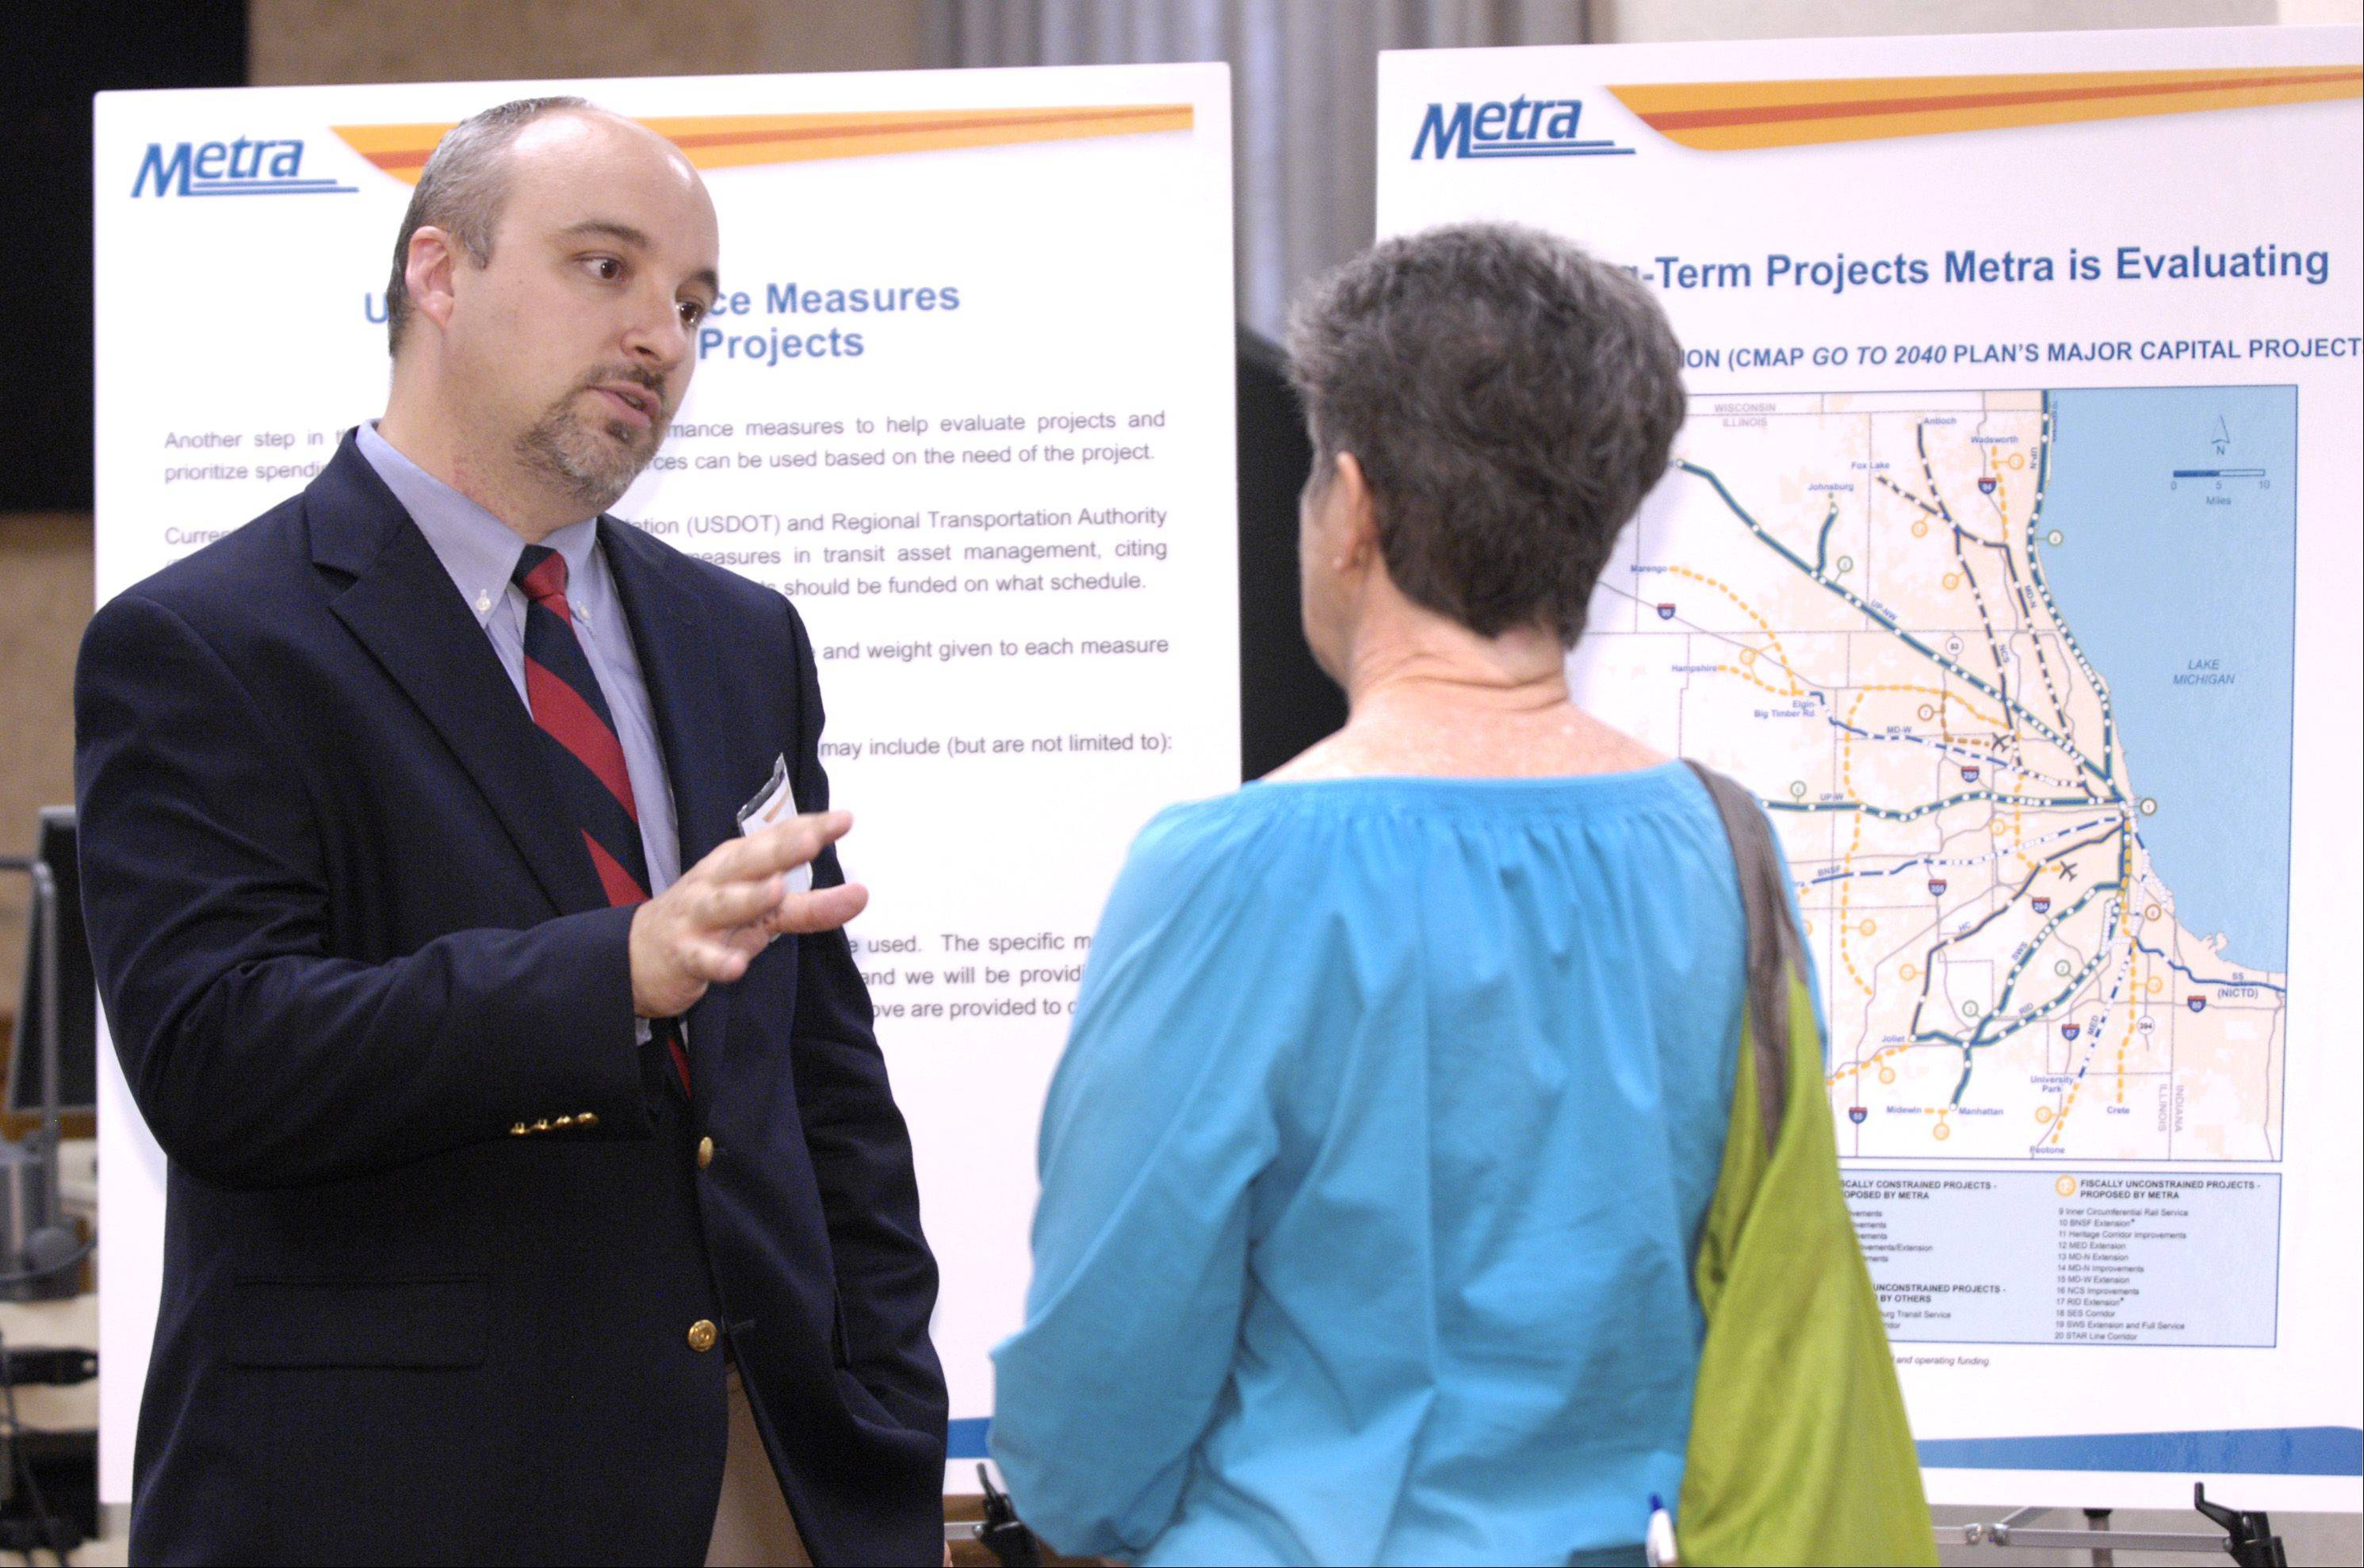 David Kralik, of the Metra Strategic Capital Planning group, talks with Glen Ellyn resident Chris Fiebig during an open house on Metra's new strategic plan Thursday in Glen Ellyn.